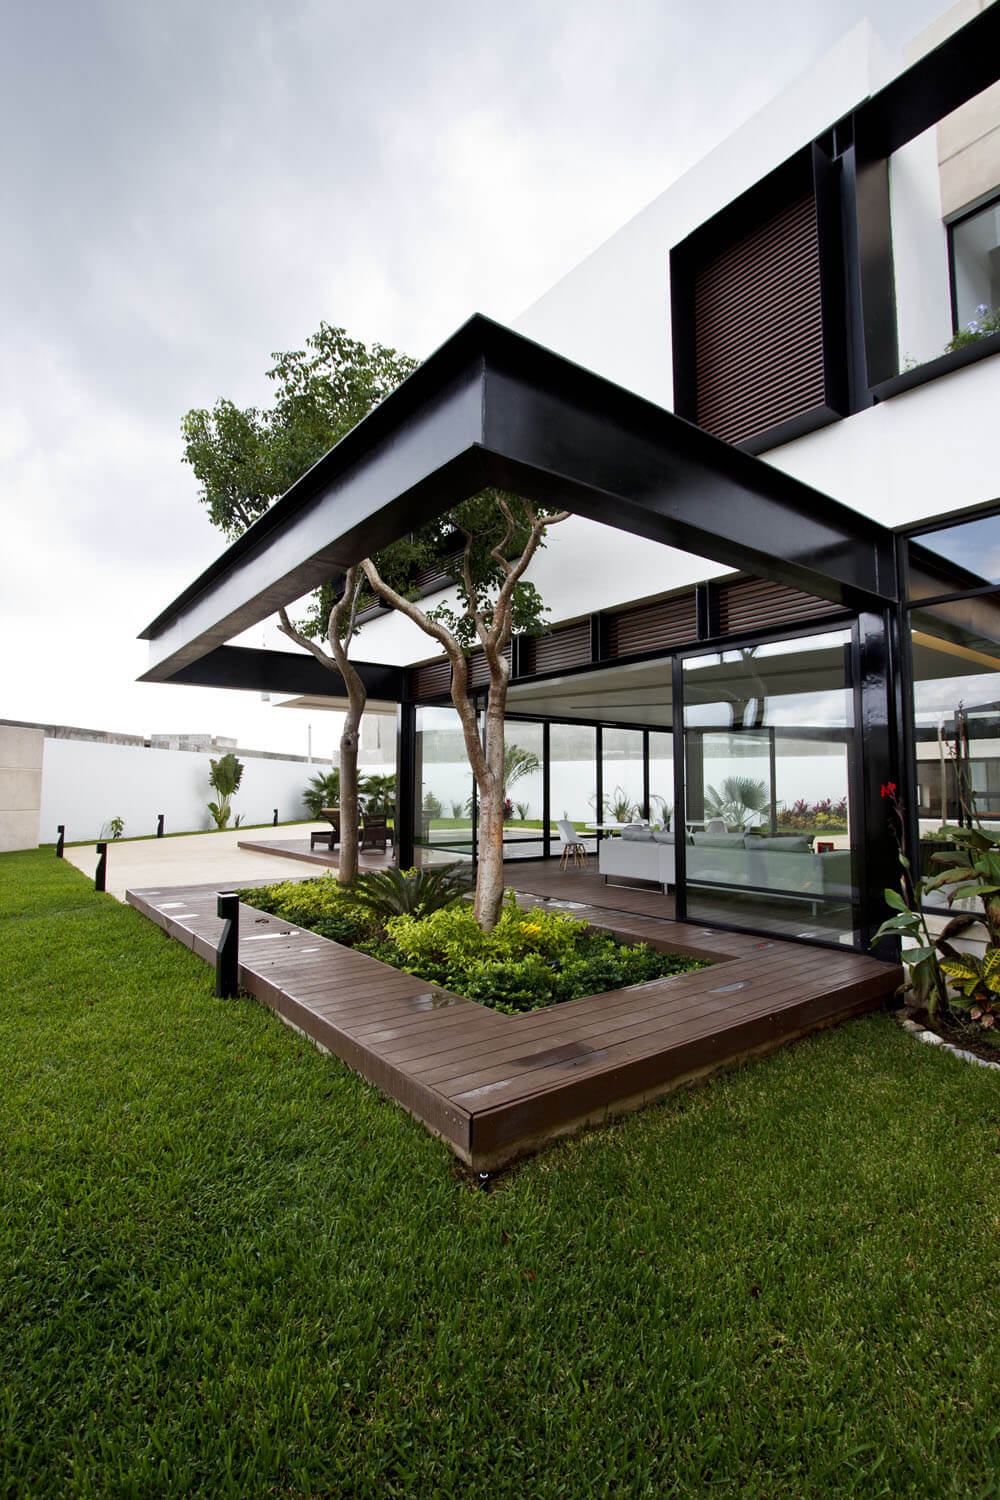 Yucatan cantilevered house deck with threes